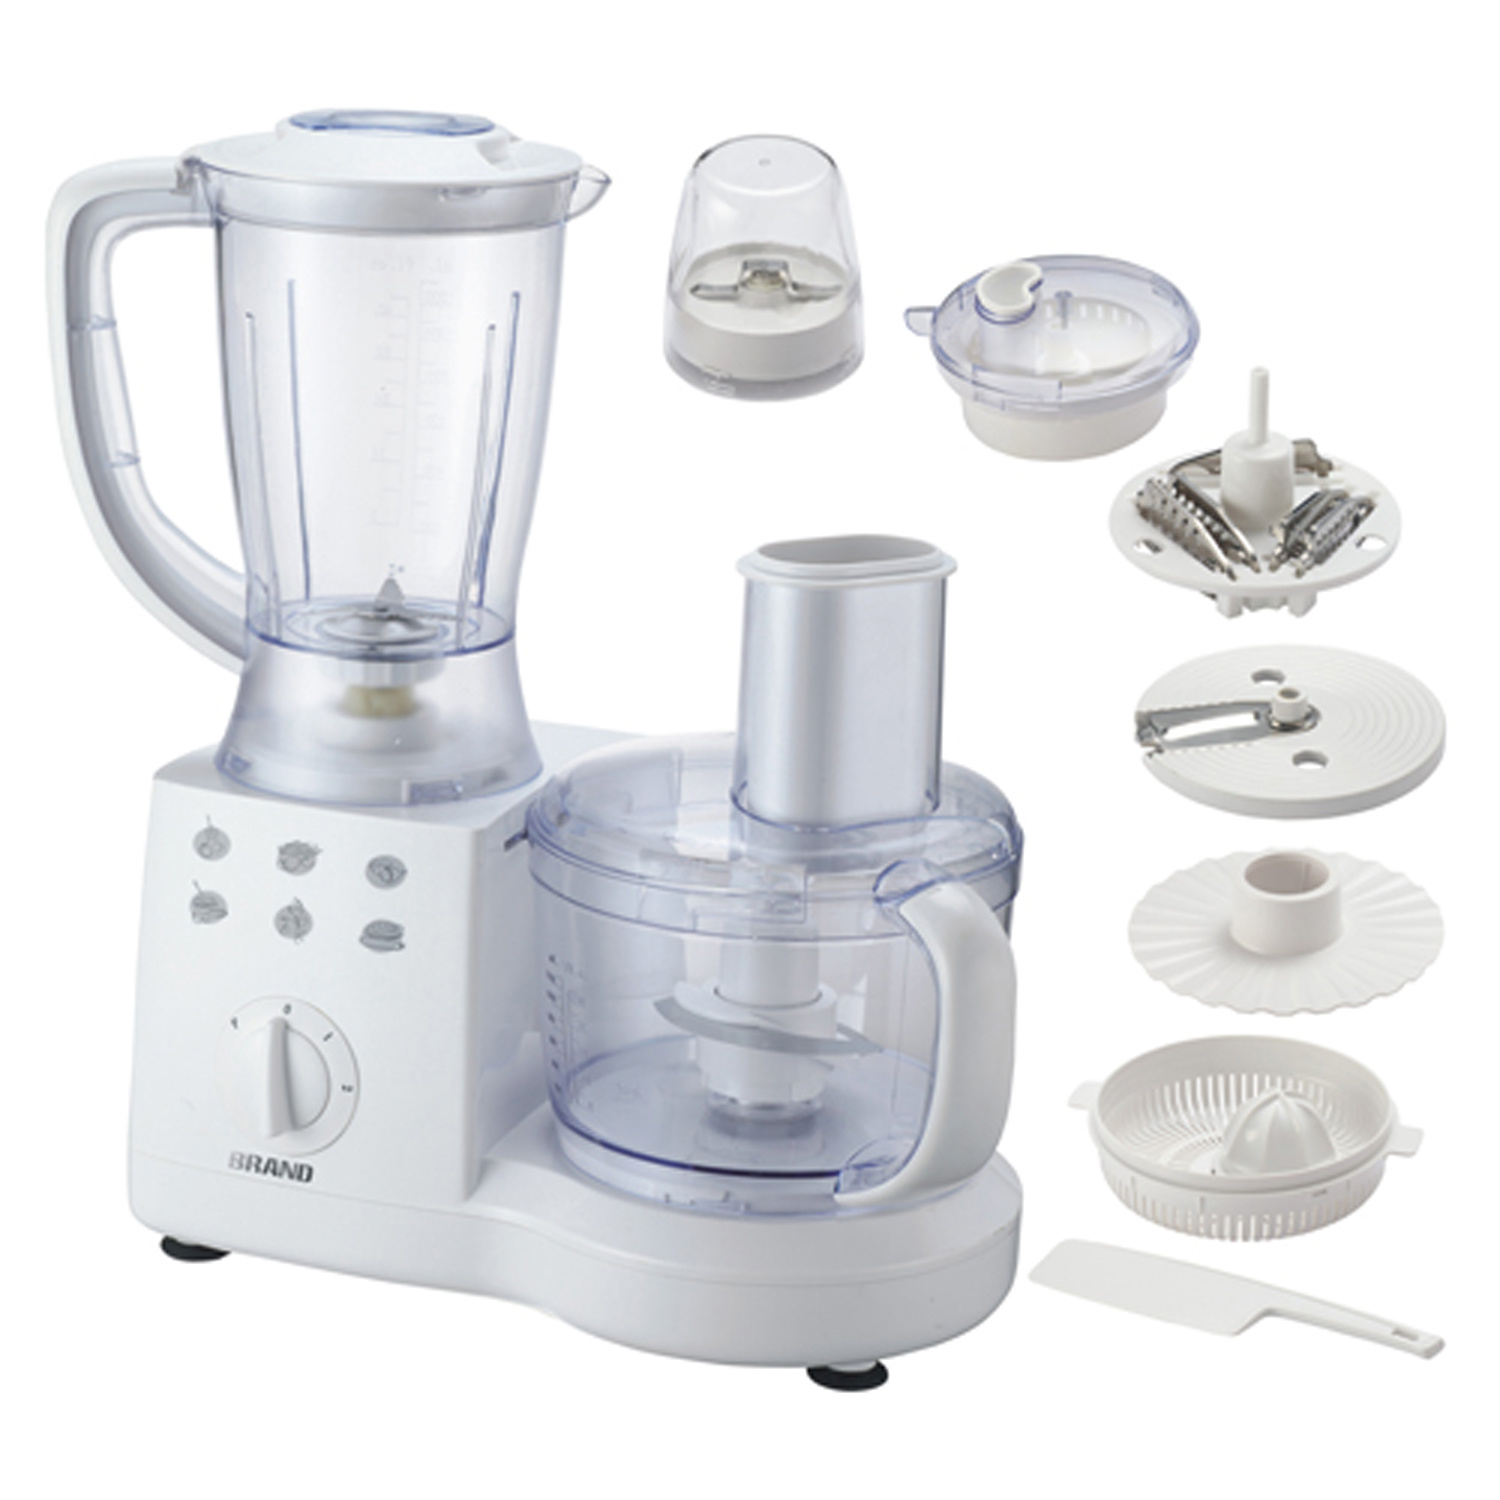 Household Kitchen Appliance 500watt Multifunctions Food Processor